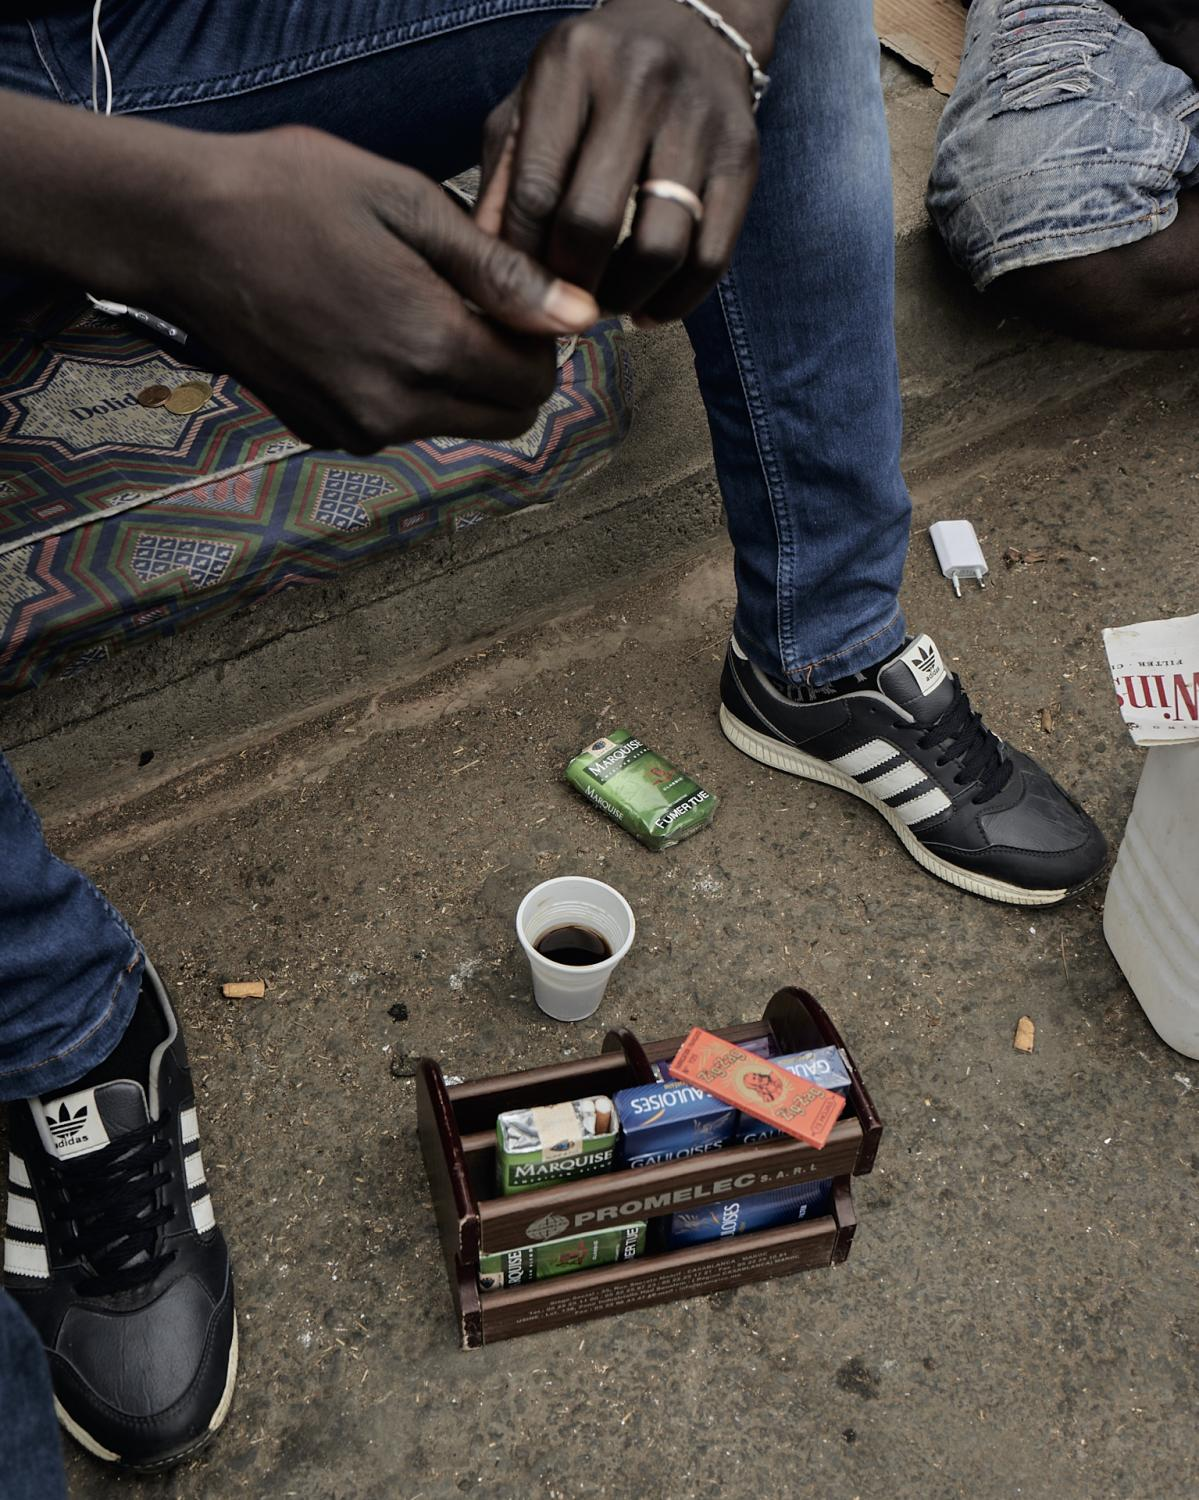 Cigarettes, coffee, and change is the daily setup for some of those kids who manage to save a little bit of money and buy things to re-sell on the light stops. Casablanca, Morocco, 2019.